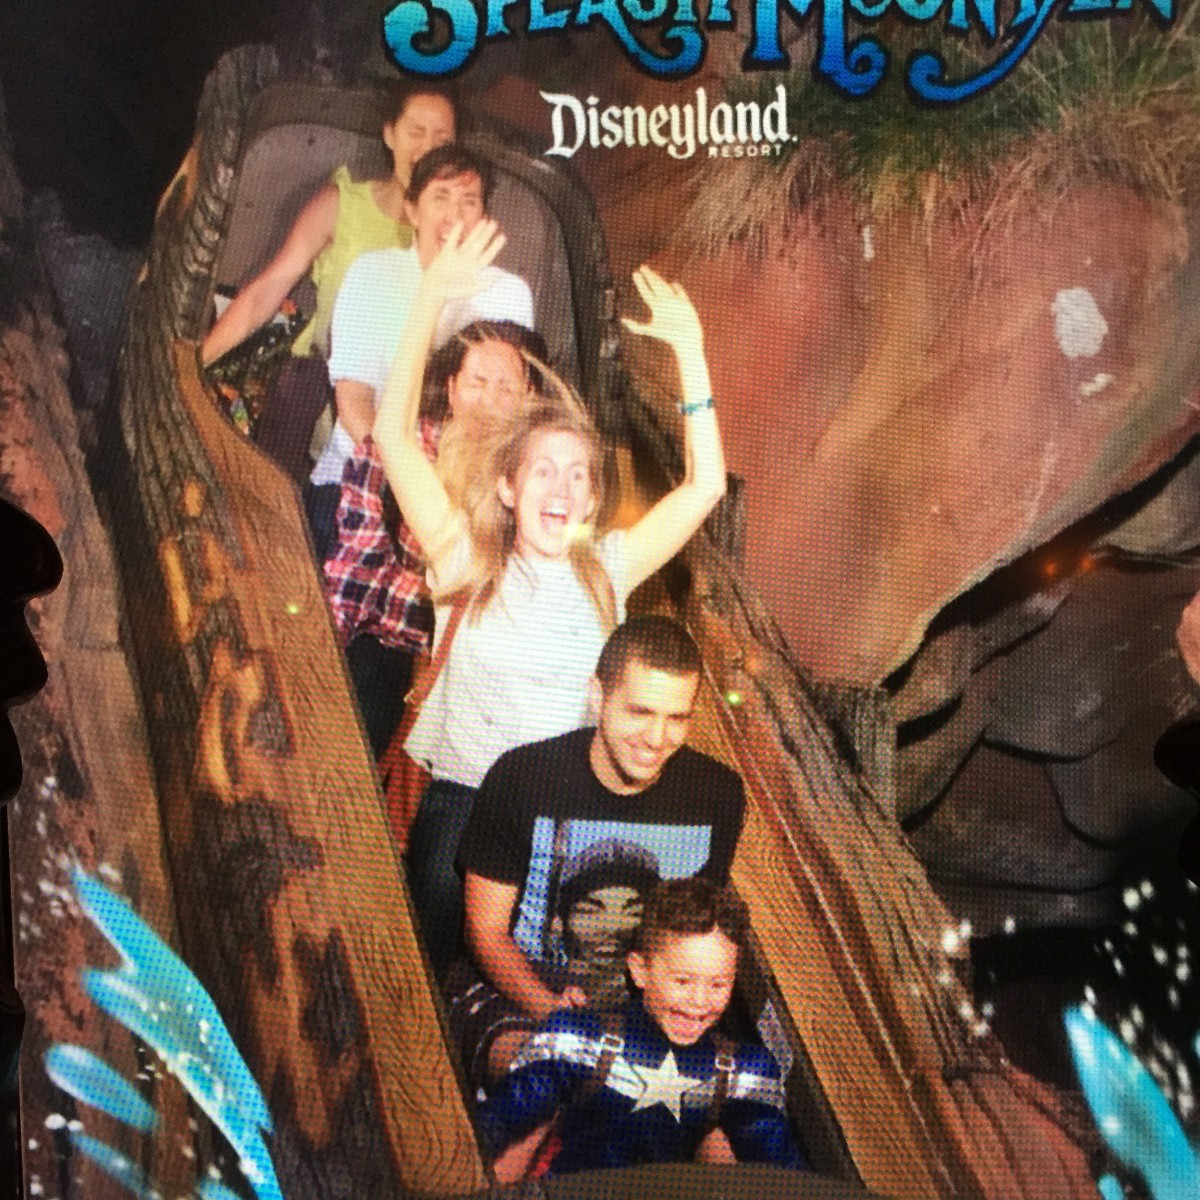 Ride Splash Mountain as much as you want!